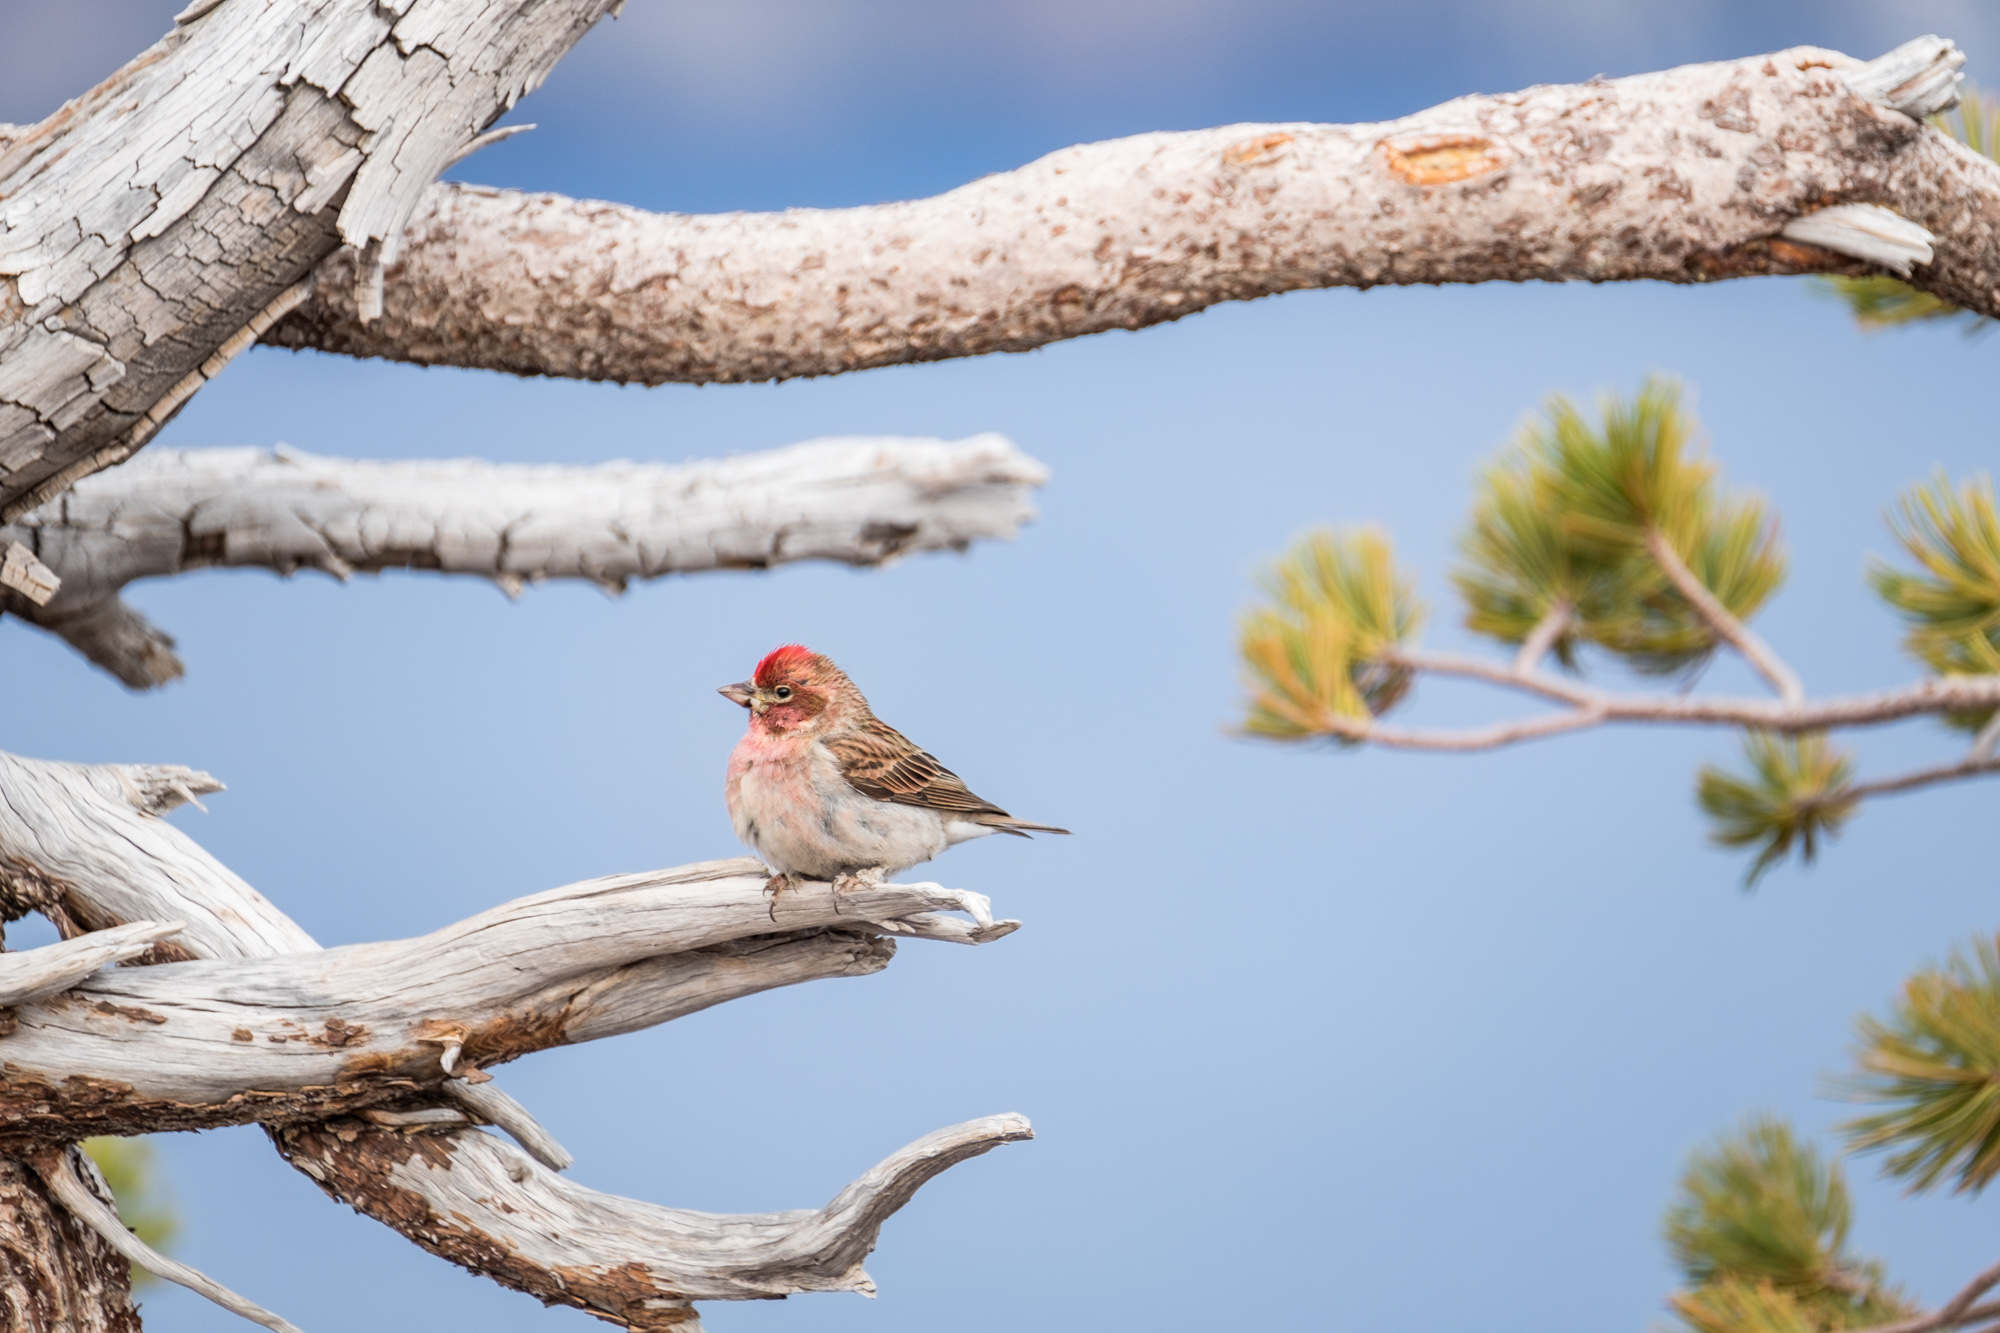 Another pretty bird, this one with a pink head.